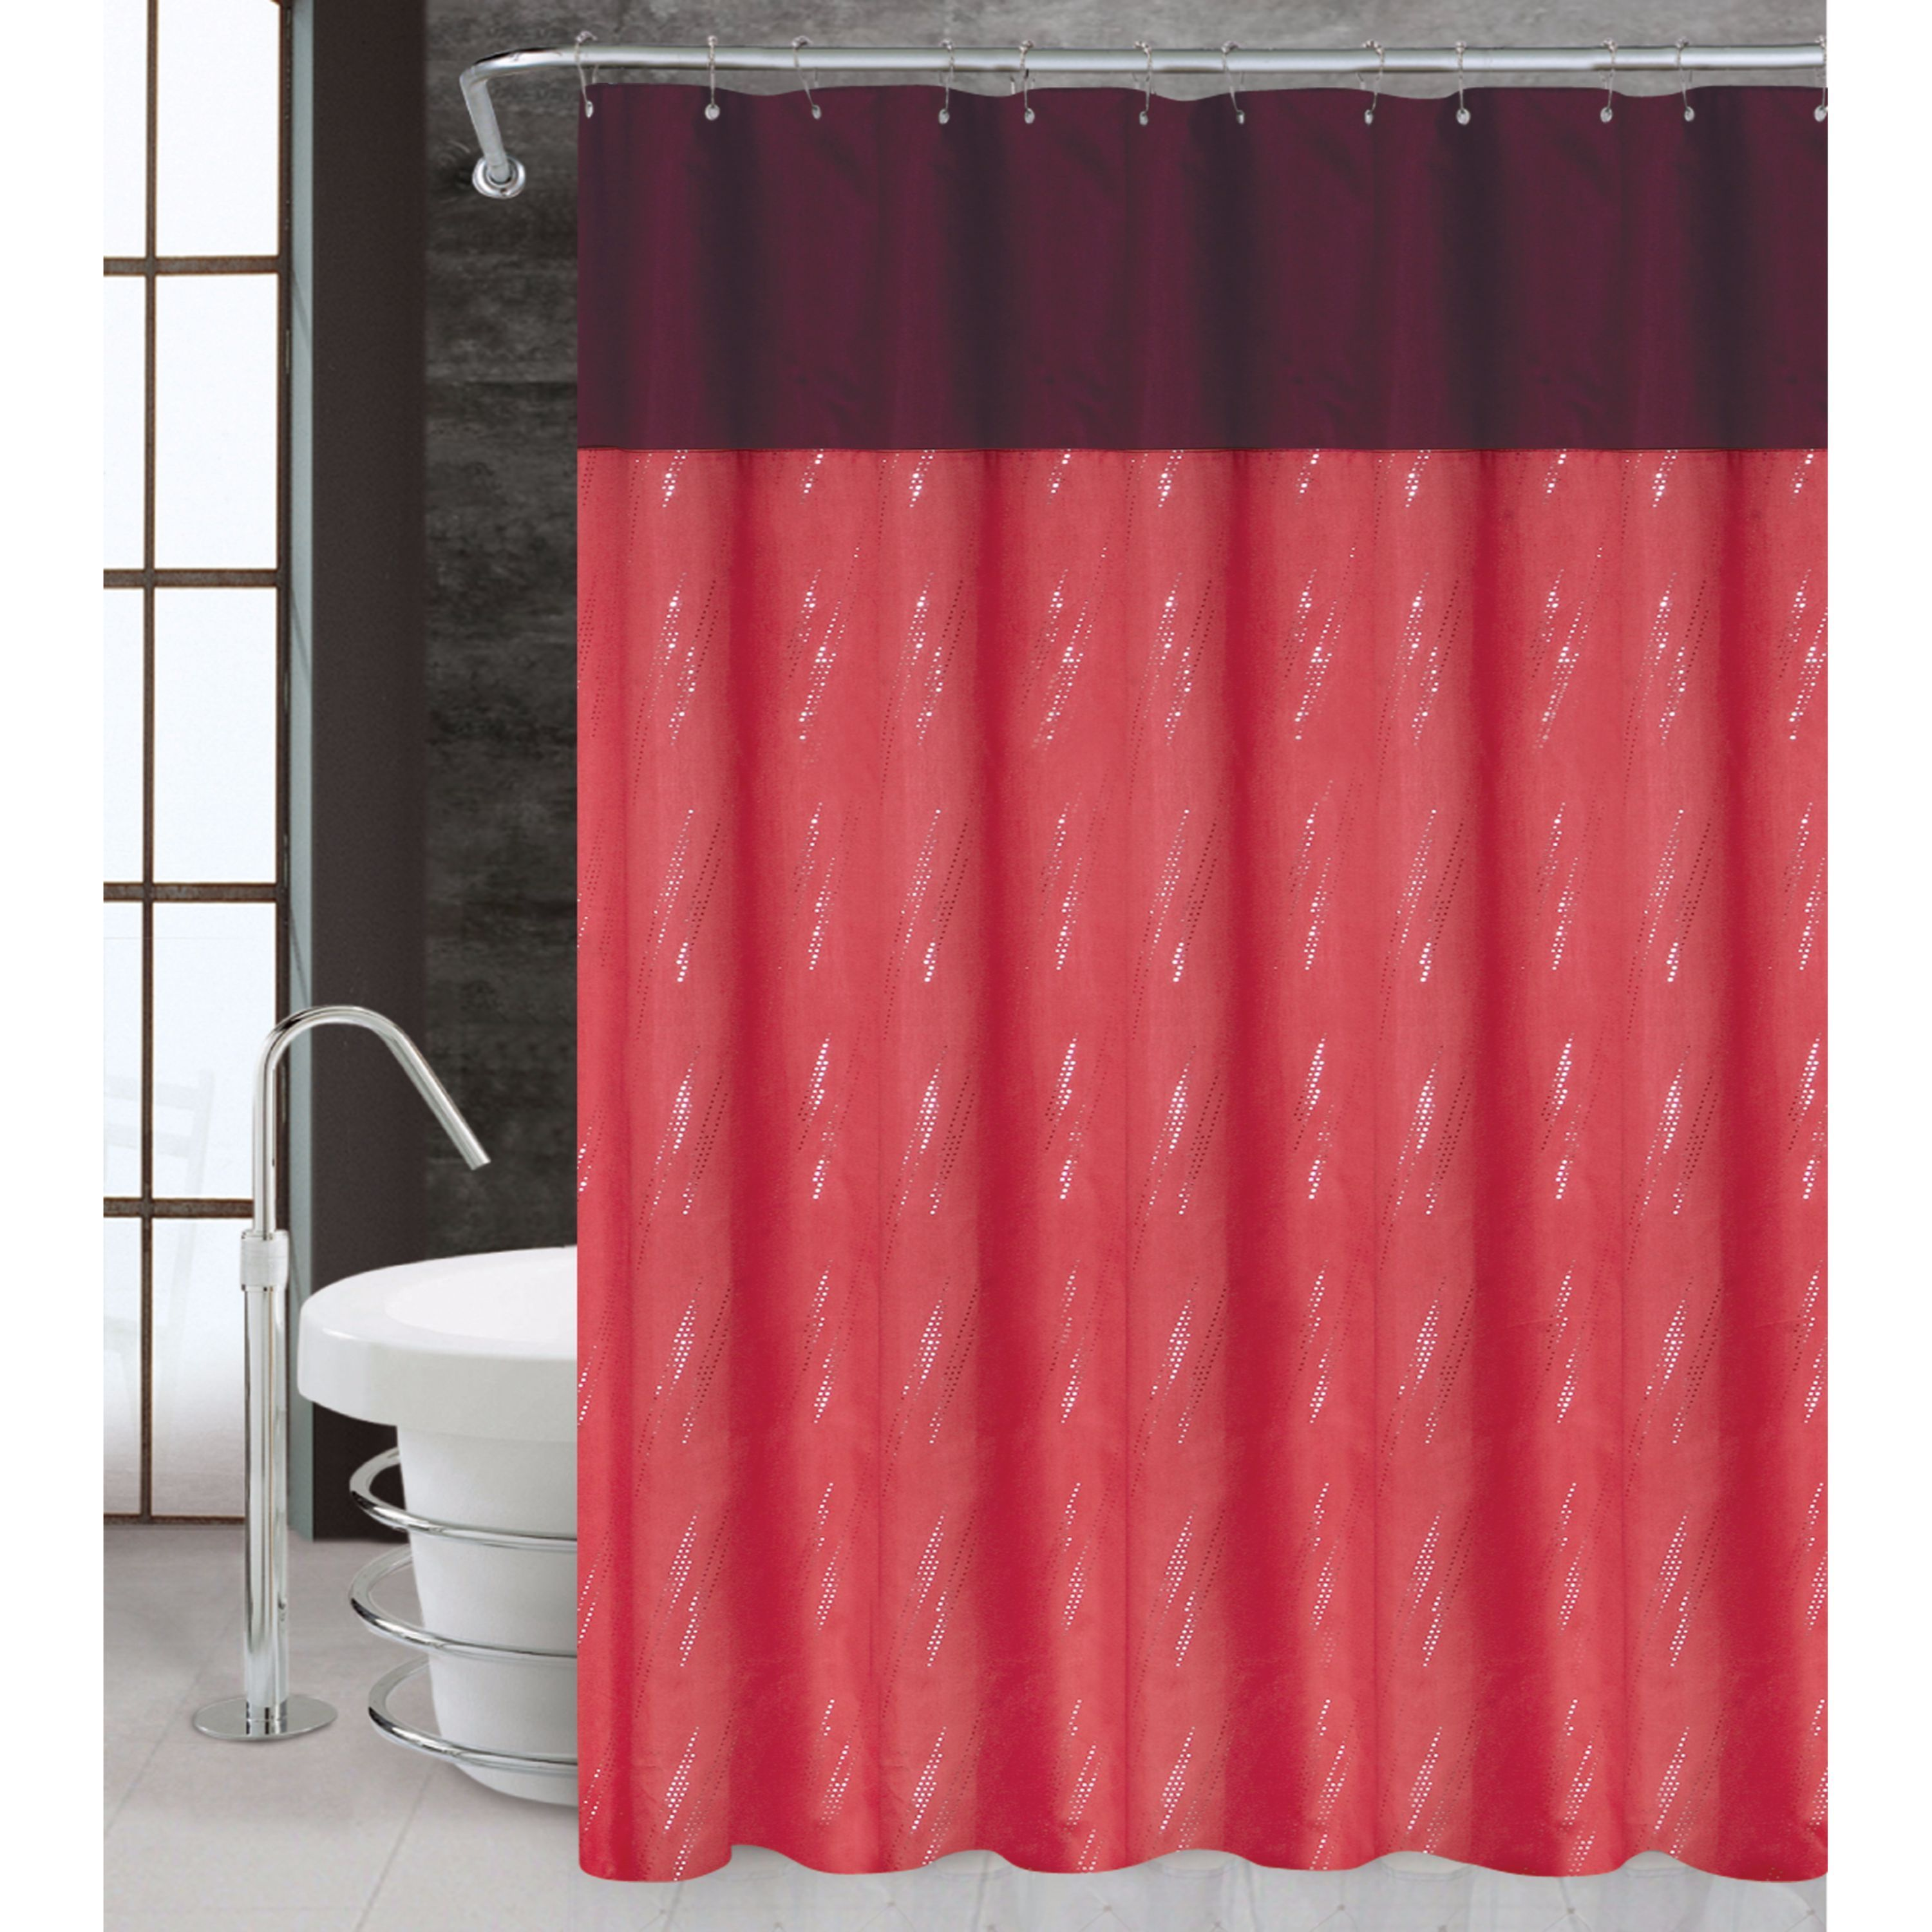 Rain by Artistic Linen Easy To Hang Polyester Shower Curt...